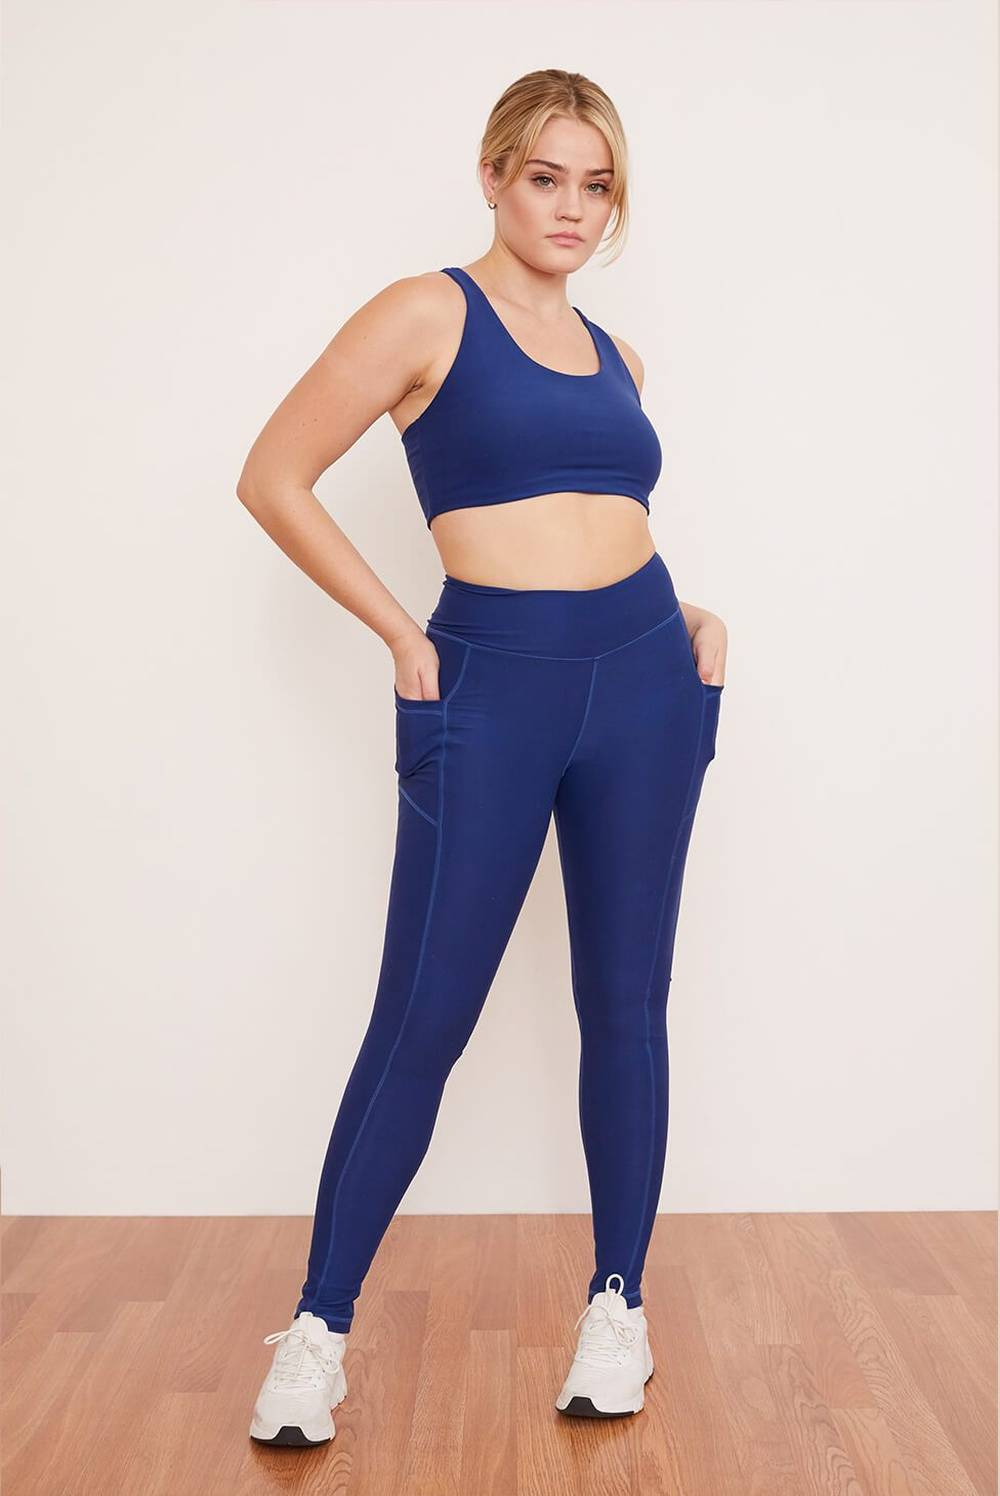 wolven threads cheap plus size workout clothes